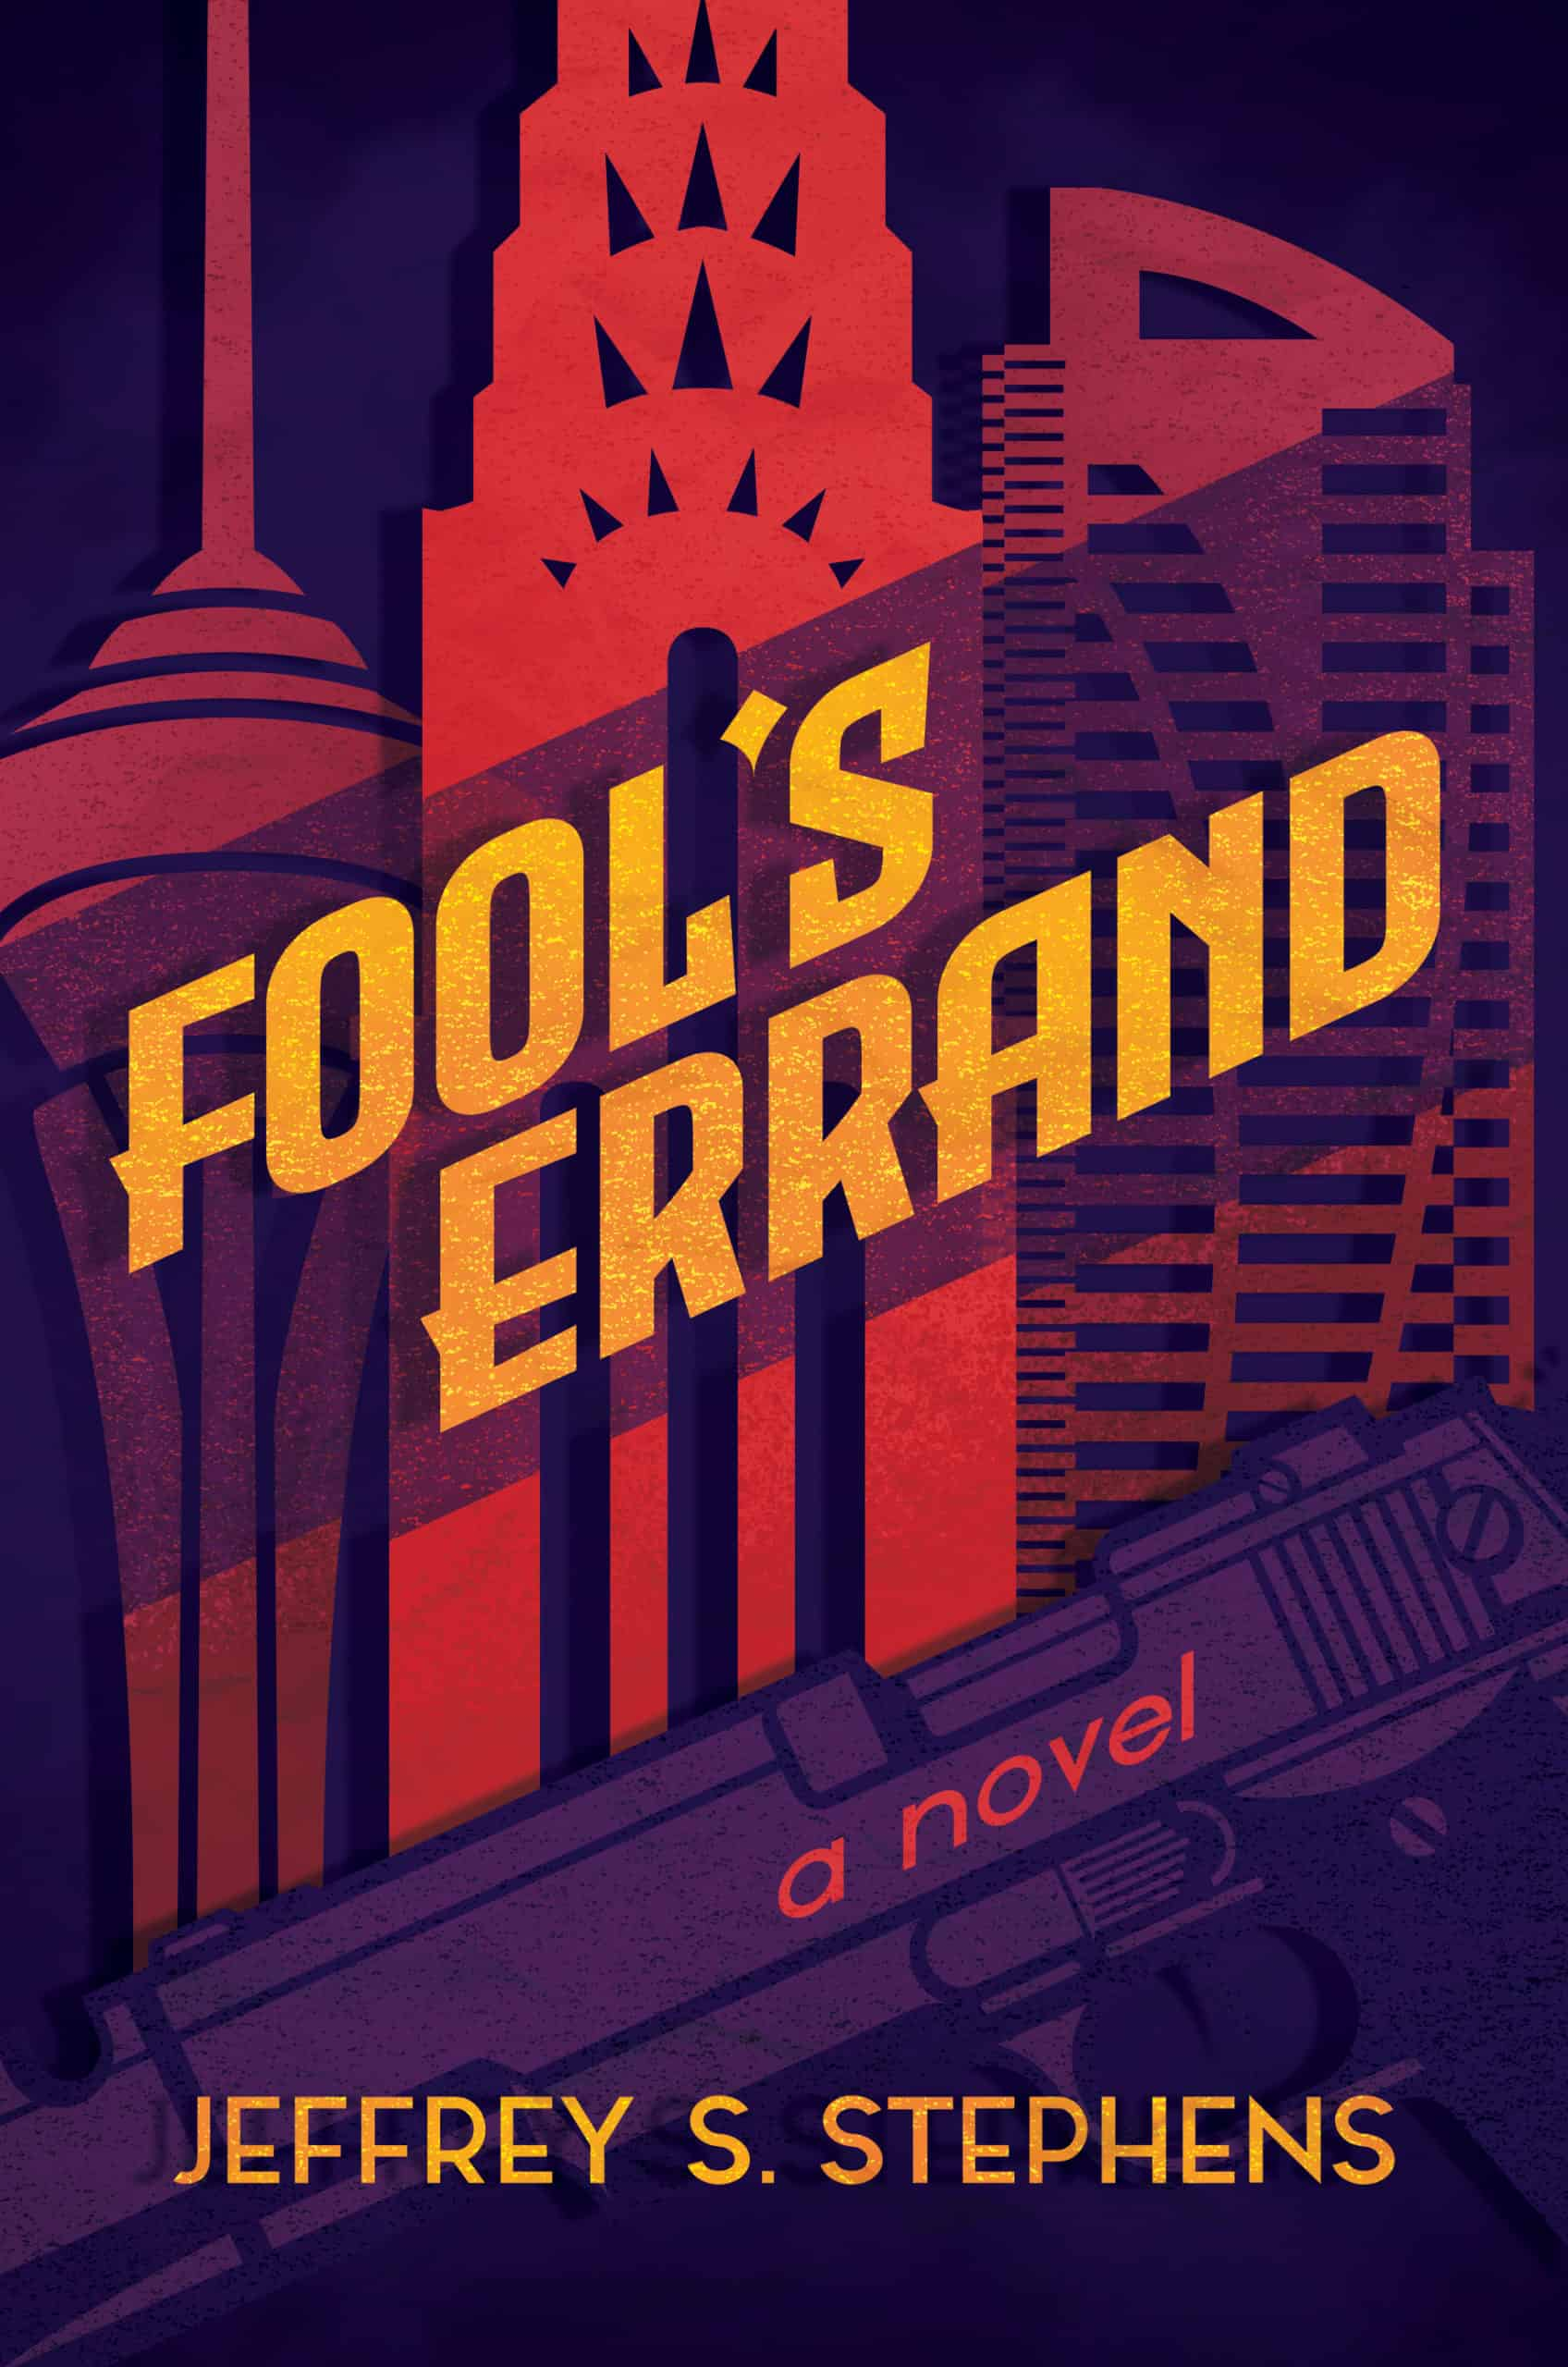 Jeffrey Stephens Fool's Errand BOOK COVER IMAGE